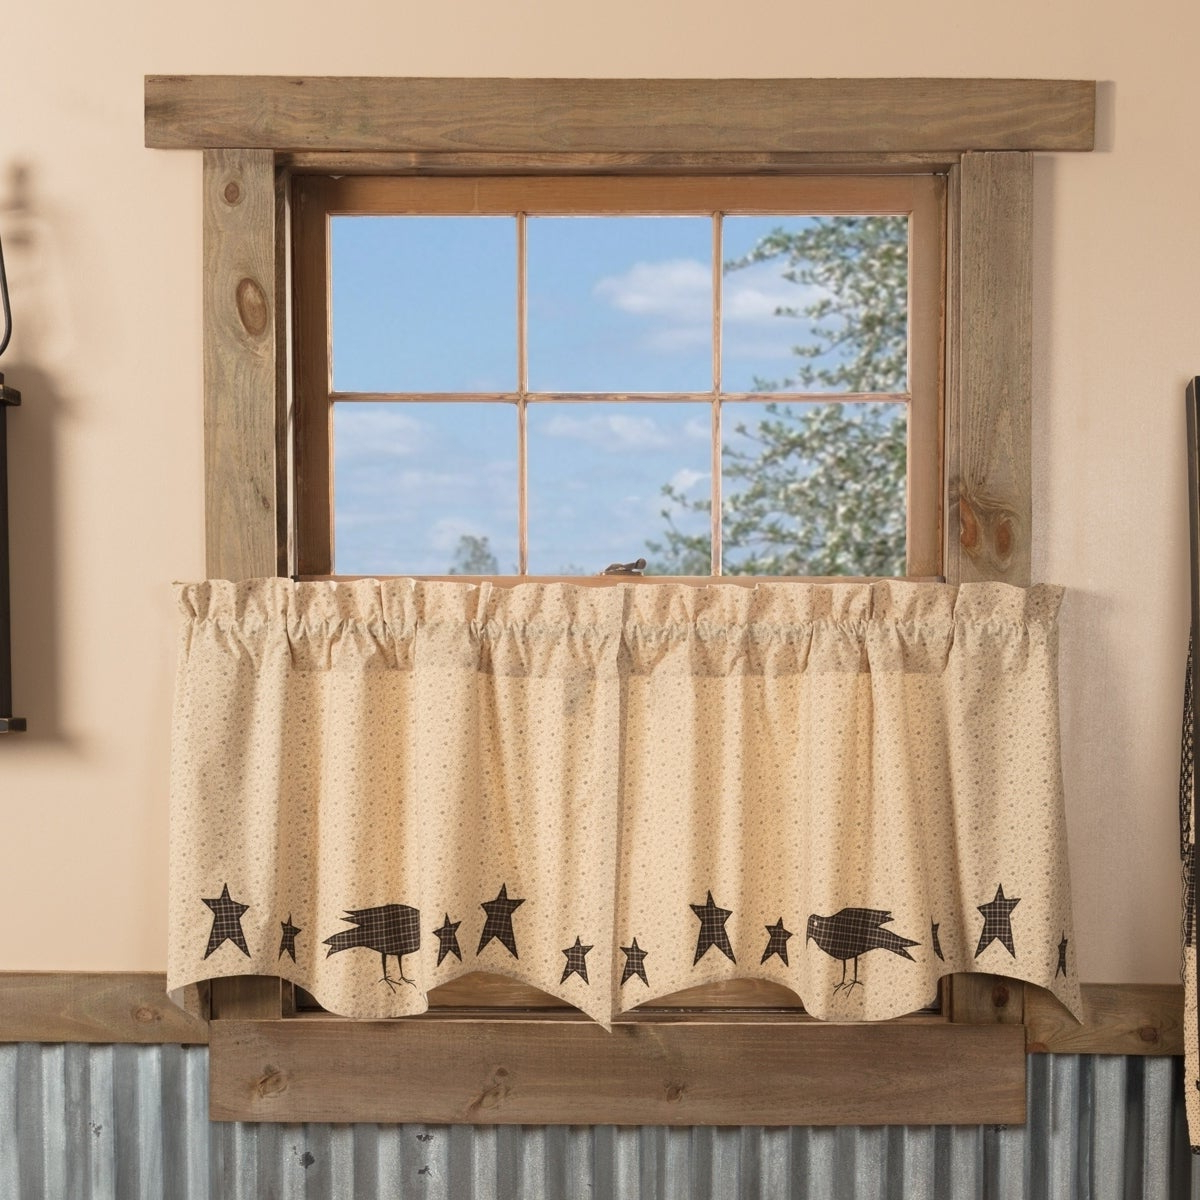 Tan Primitive Kitchen Curtains Vhc Kettle Grove Crow And Star Tier Pair Rod Pocket Cotton Star Appliqued Within Famous Primitive Kitchen Curtains (View 12 of 20)